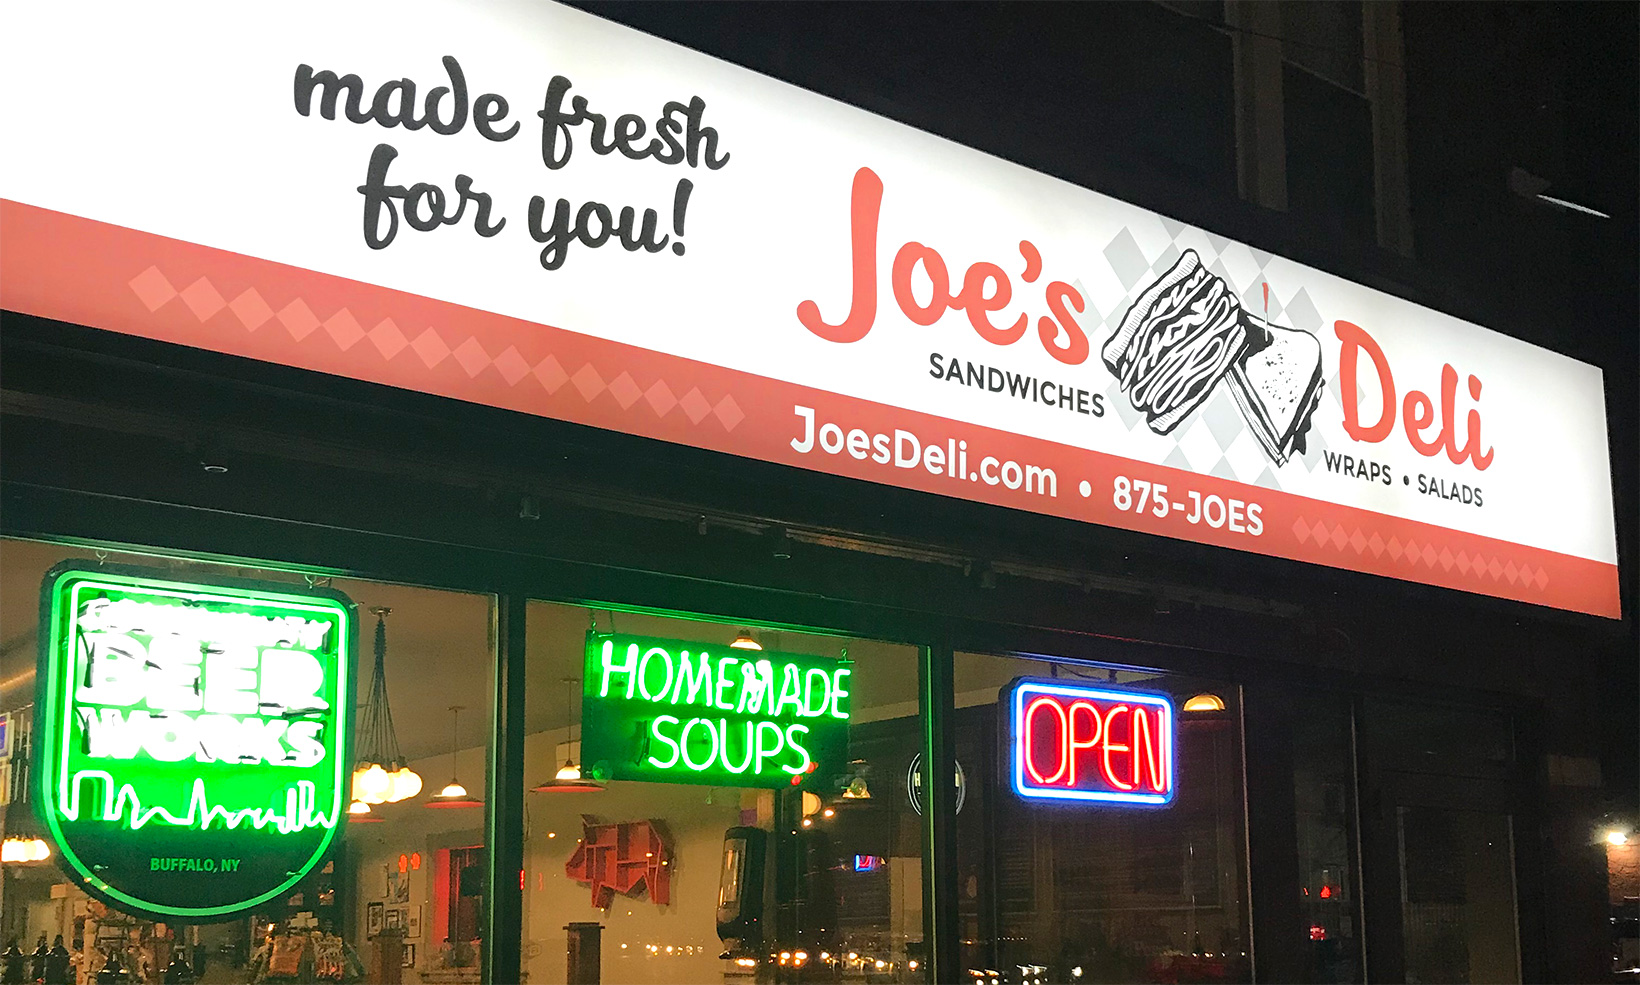 OW|EN designed the exterior building signs at Joe's Deli Hertel – the backlit plexiglass signage displays the restaurant's brand and tagline